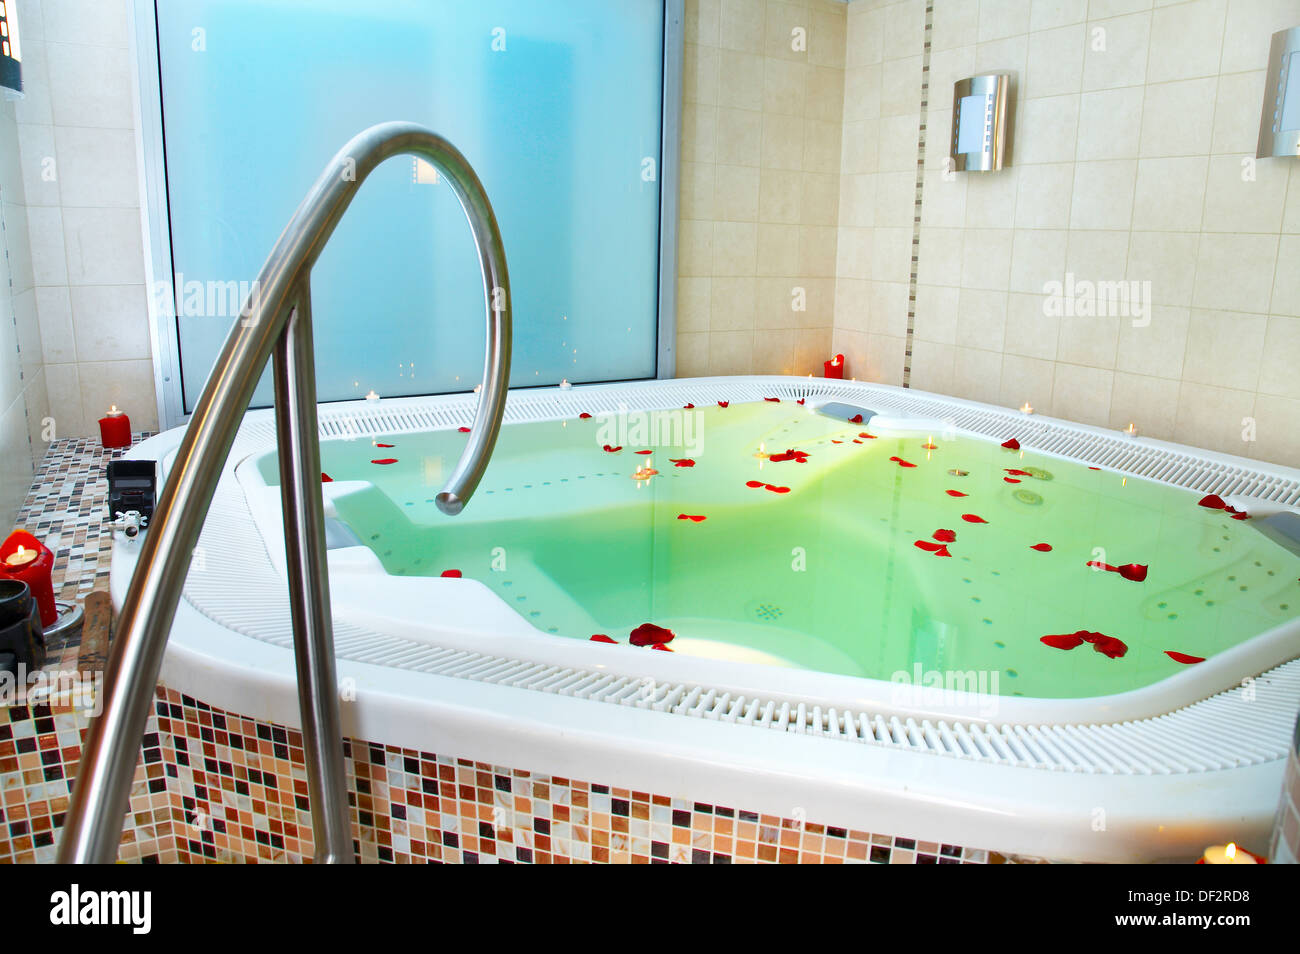 Bath of a jacuzzi with petals of roses Stock Photo: 60913252 - Alamy